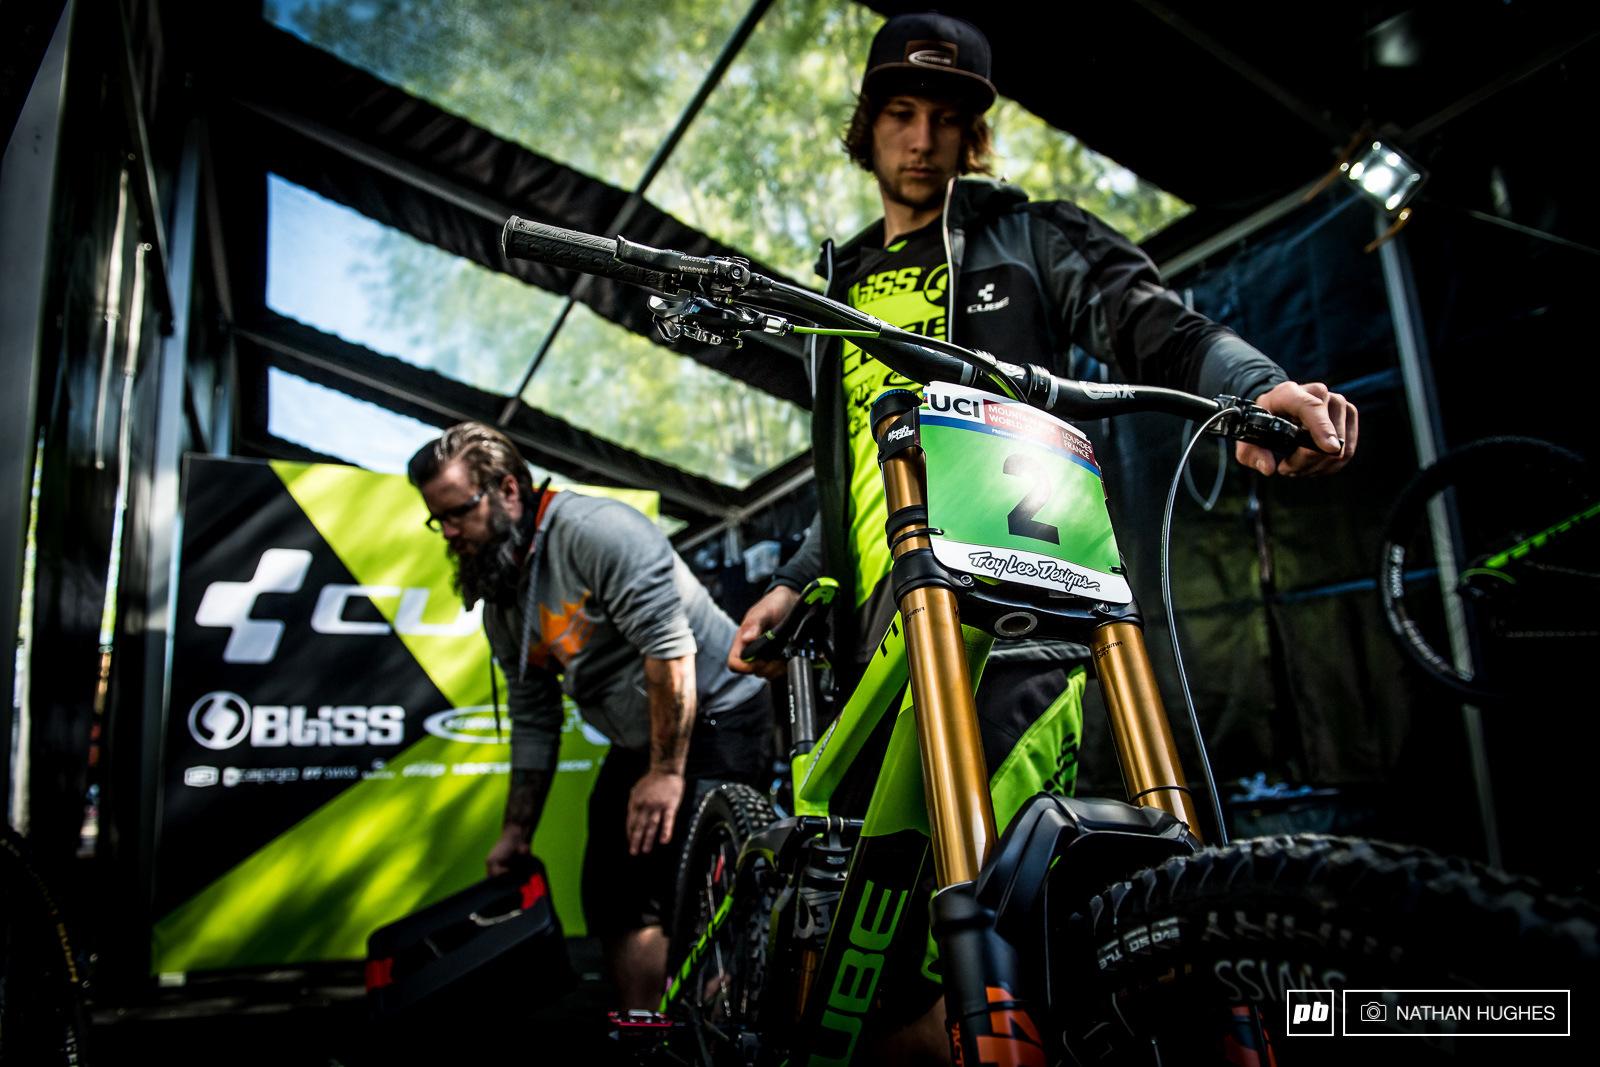 Look out for the number 2 ranked junior going into the season Germany s Max Hartenstern the new signing to ride alongside Walker and Williamson.